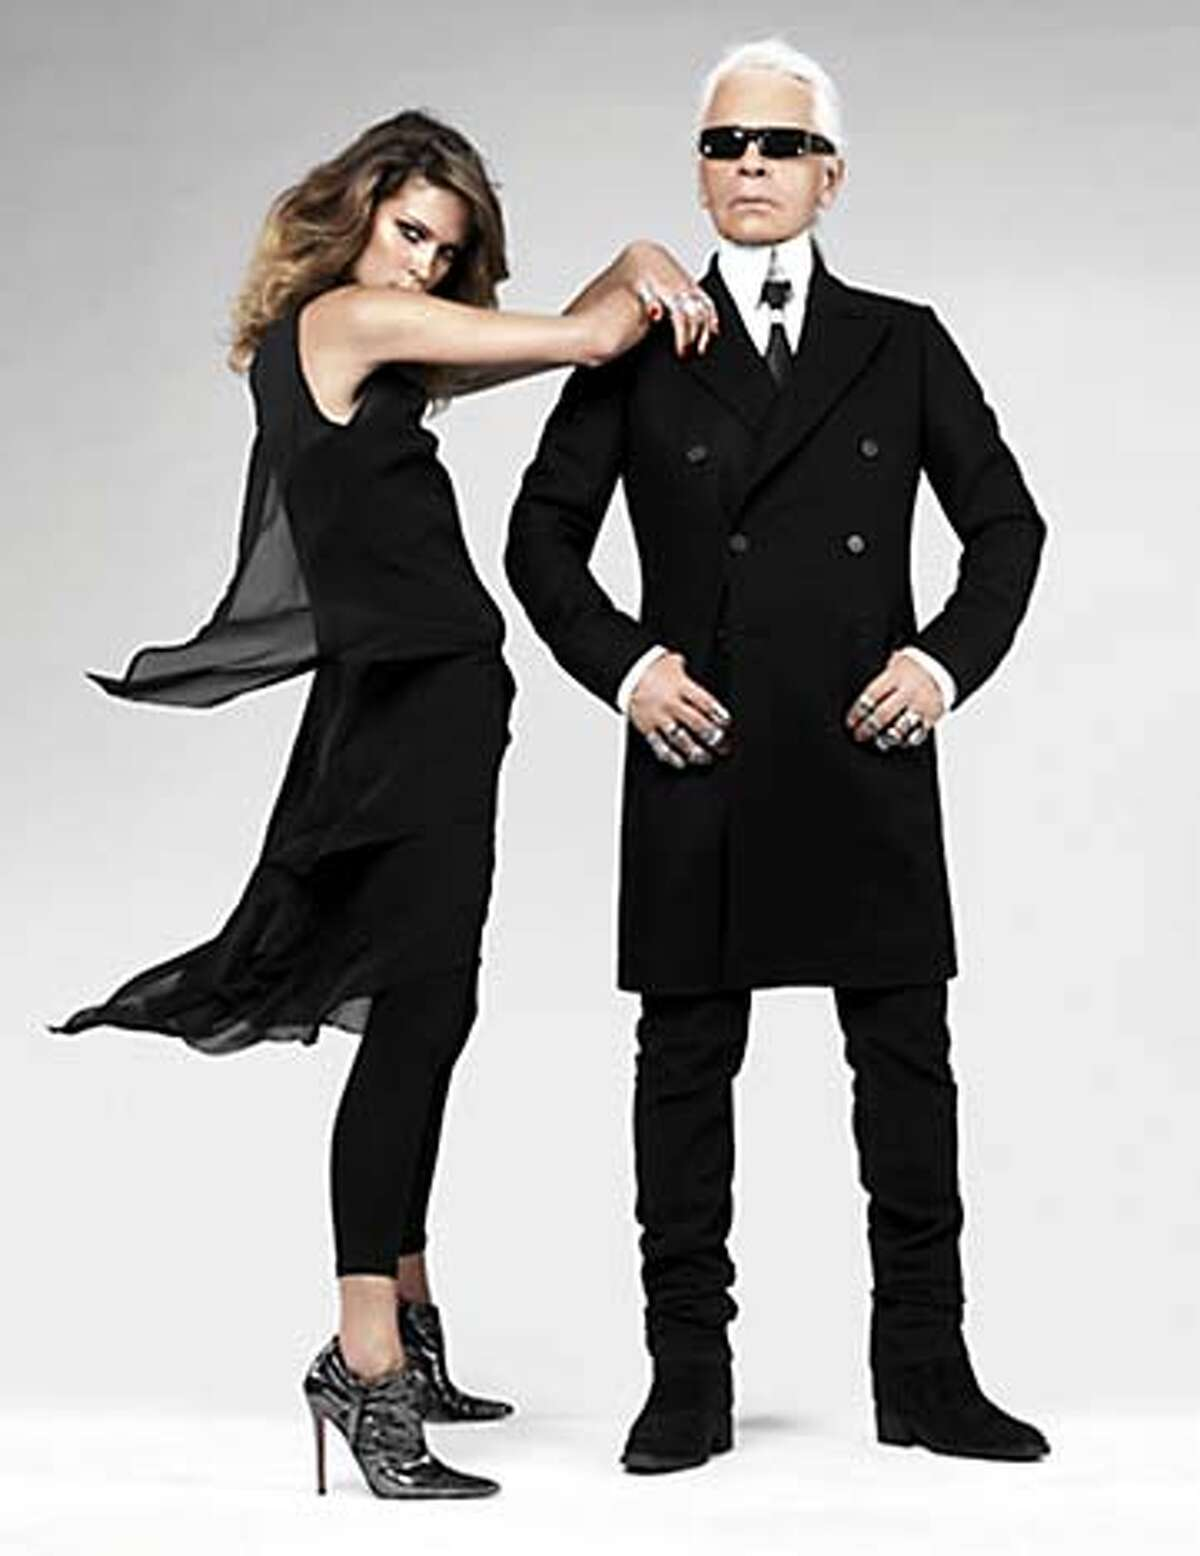 Karl lagerfeld and model show off his new line for the fast-fashion retailer, H&M. HANDOUT Living#Living#Chronicle#11/21/2004#ALL#Advance#M6#0422470070